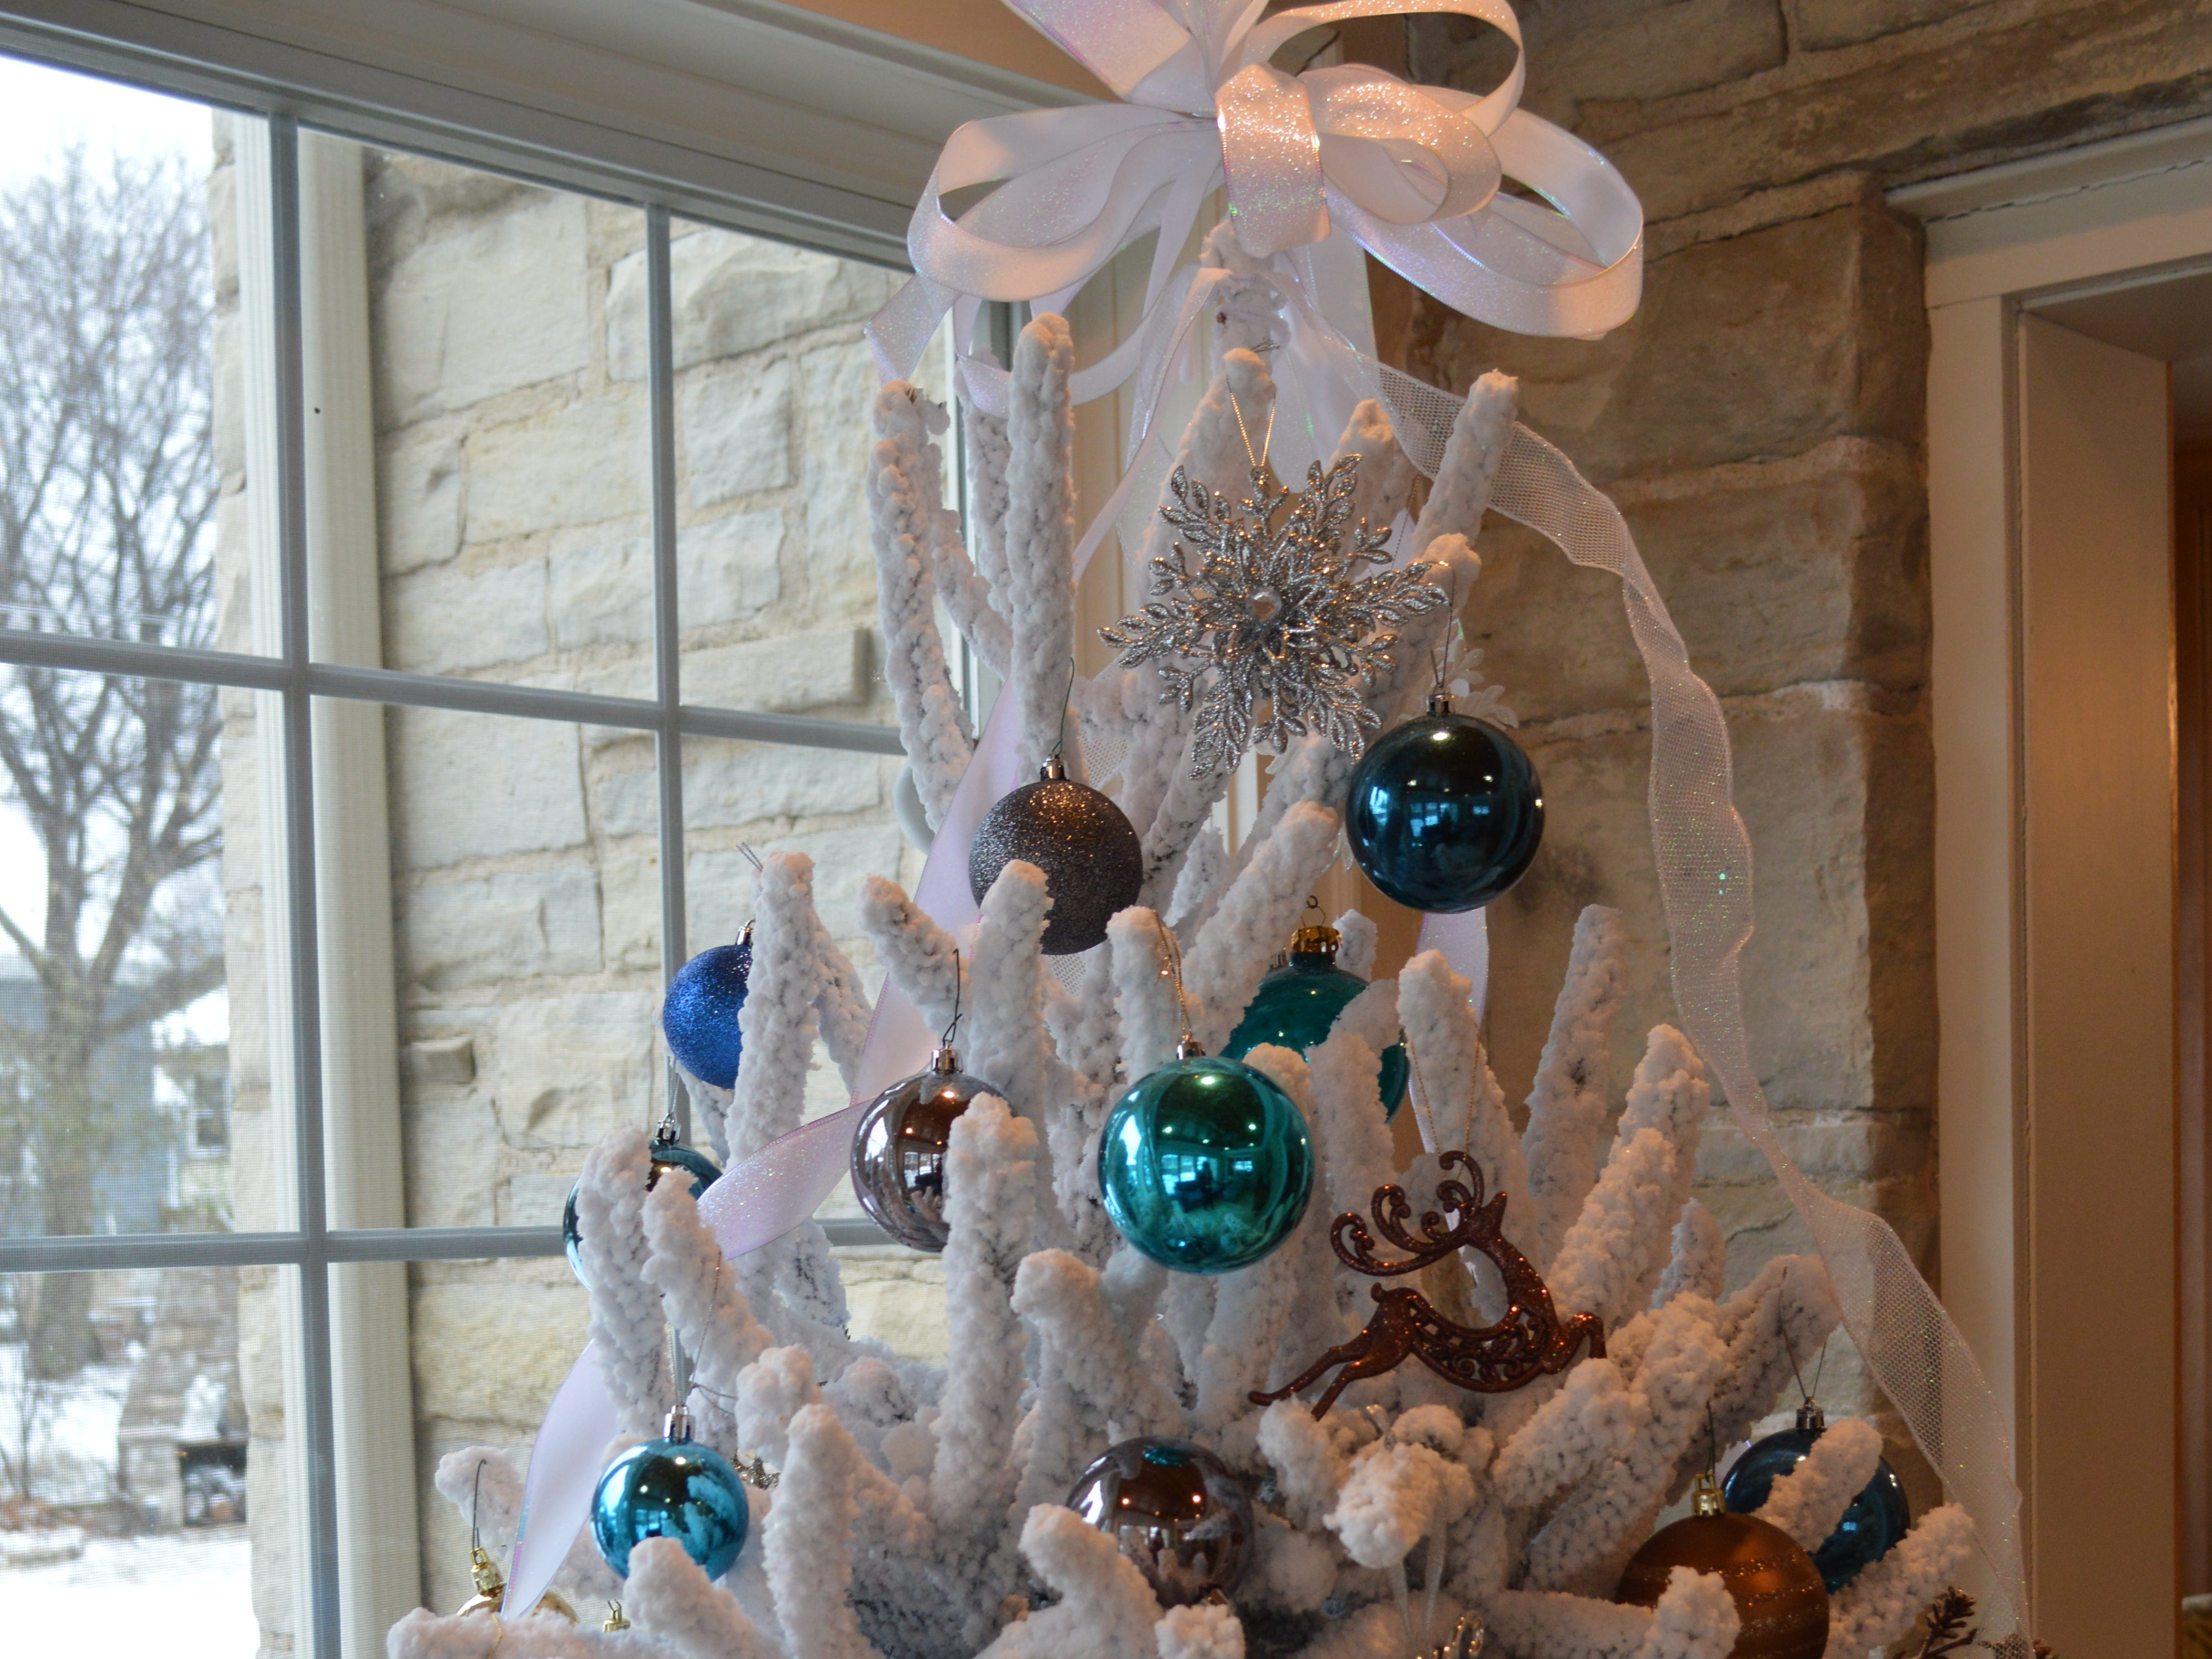 Kathy Oelstrom got a flocked Christmas tree in honor of her grandmother, who always had a blue one.